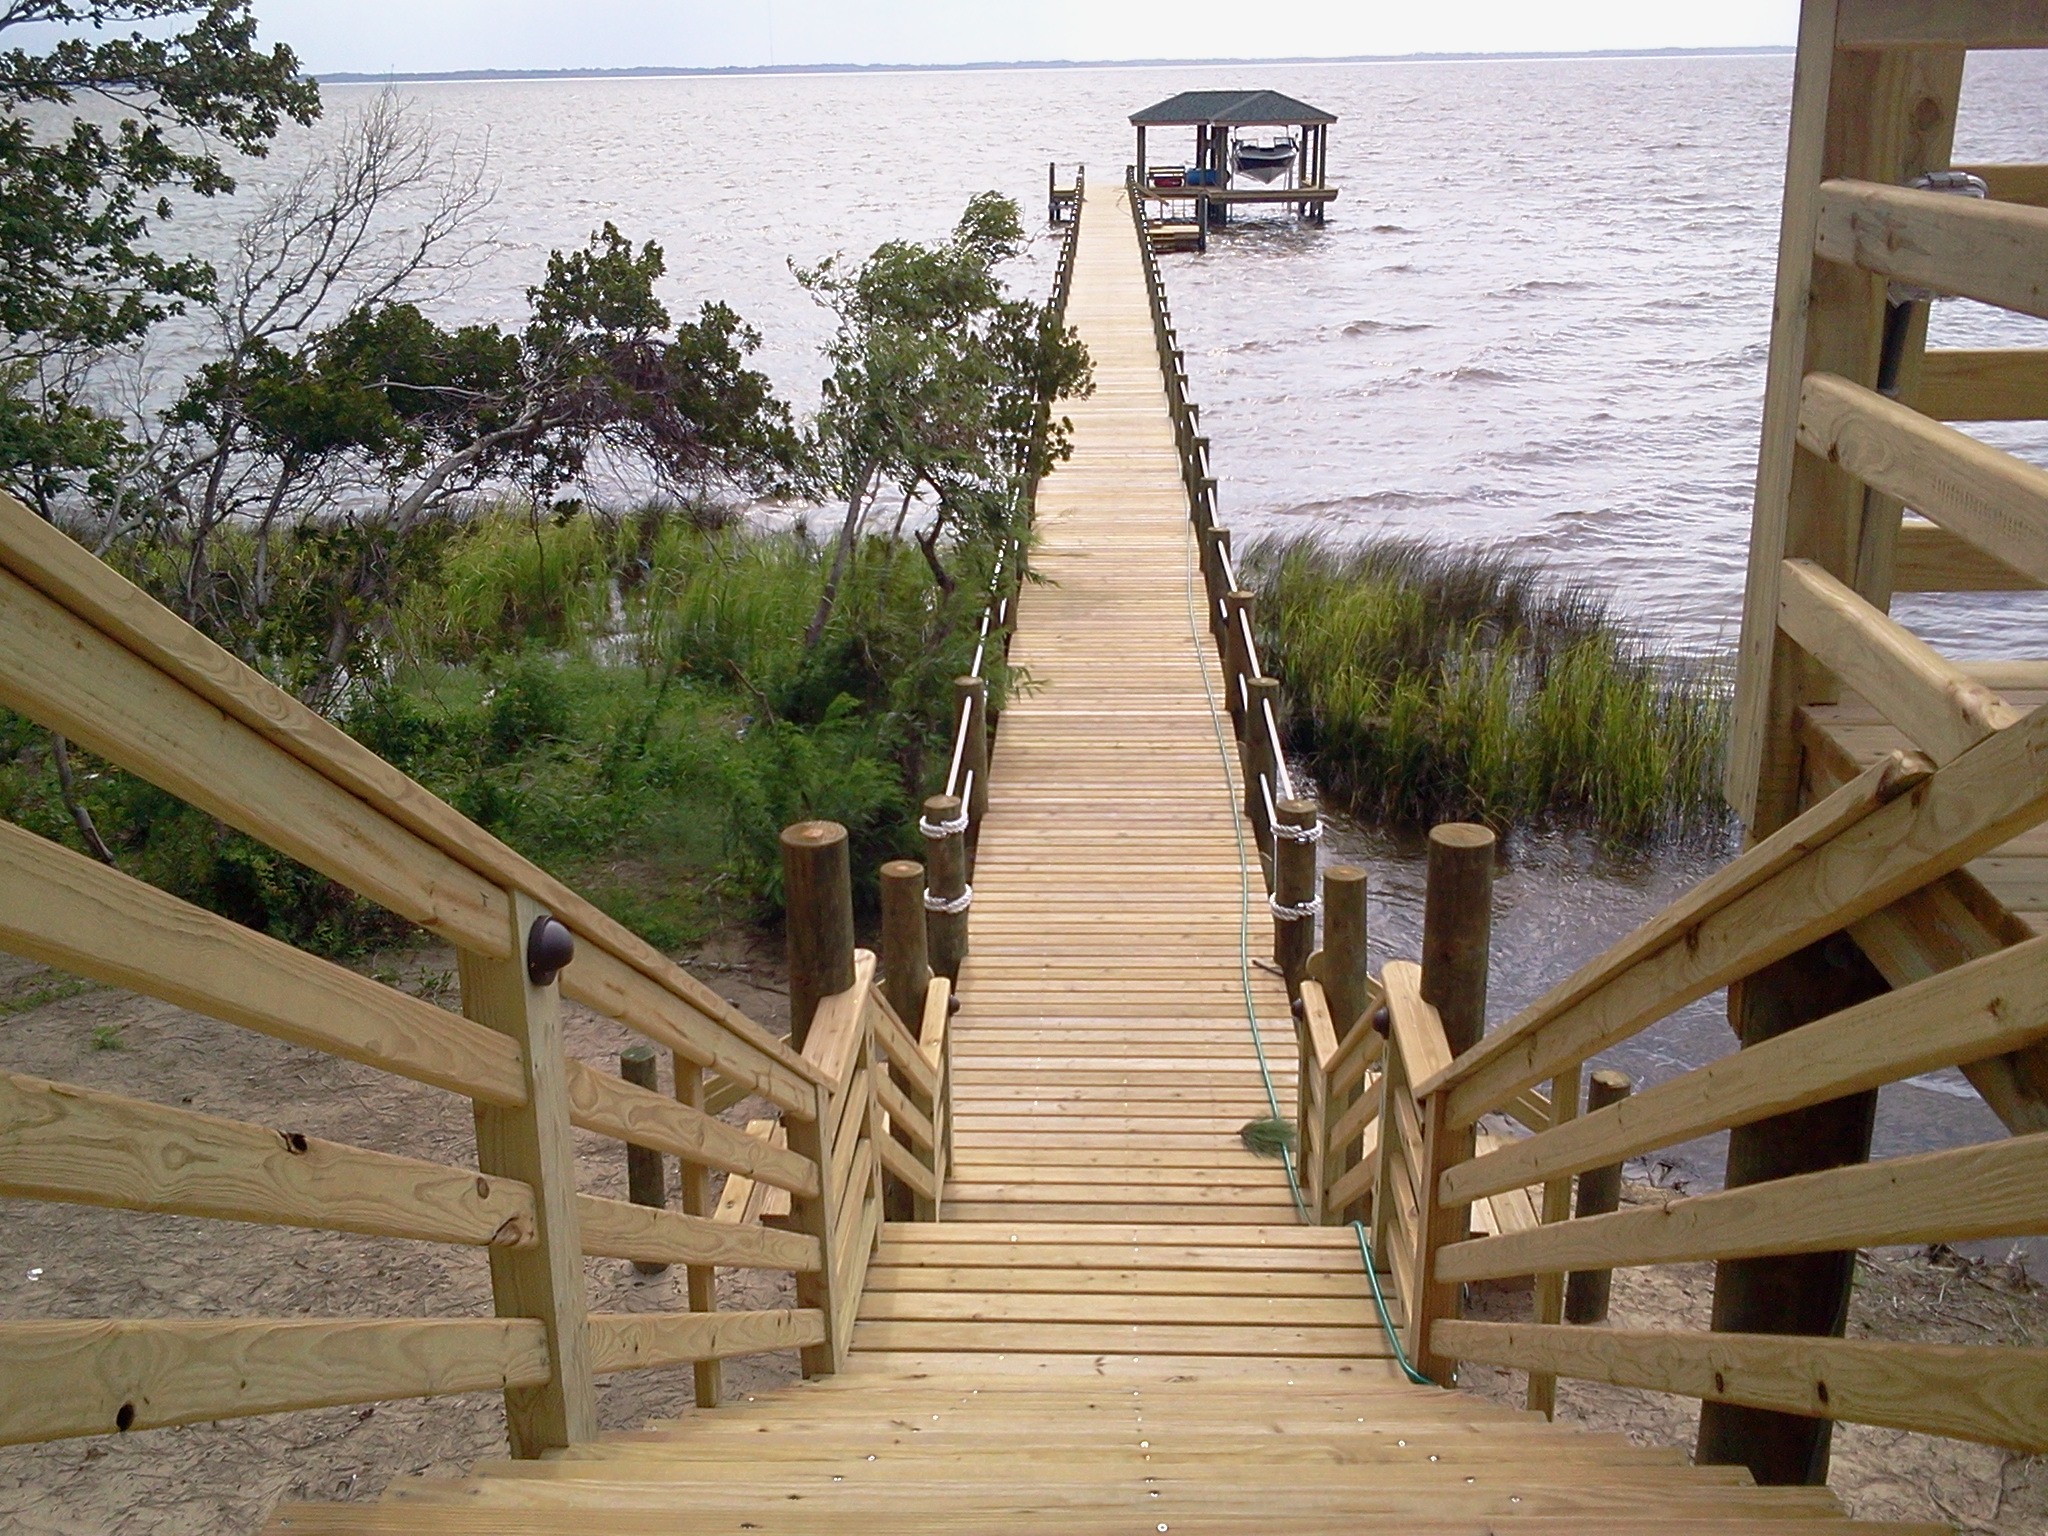 Landward Walkways and Decks  - New construction for walkways through the marsh area & home decks with walkways to the waterfront. Kayak Launch Platforms and Storage – New construction of platforms that are low enough to the allow easy access for kayaking and kayak storage.